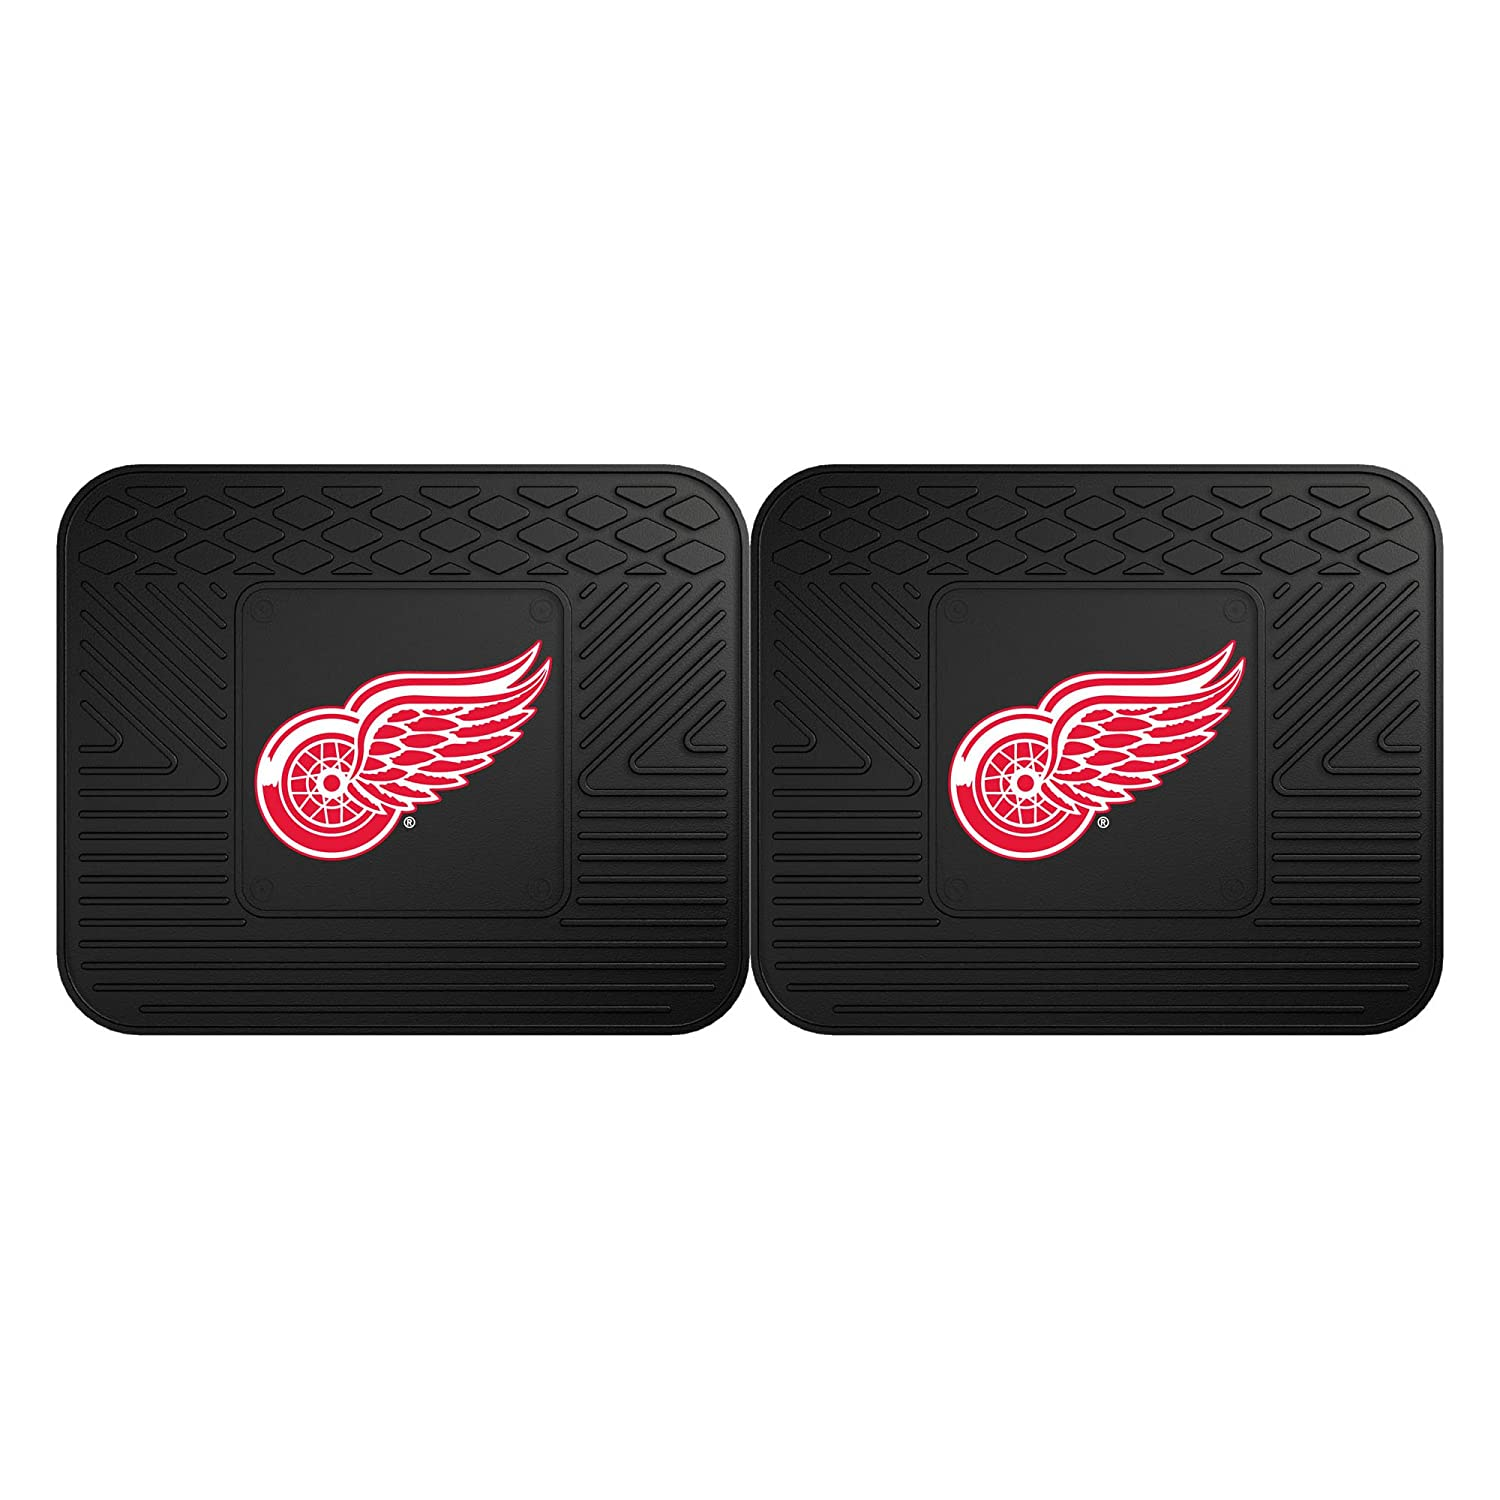 Detroit Red Wings Utility Mat FANMATS 12395 NHL 2 Piece